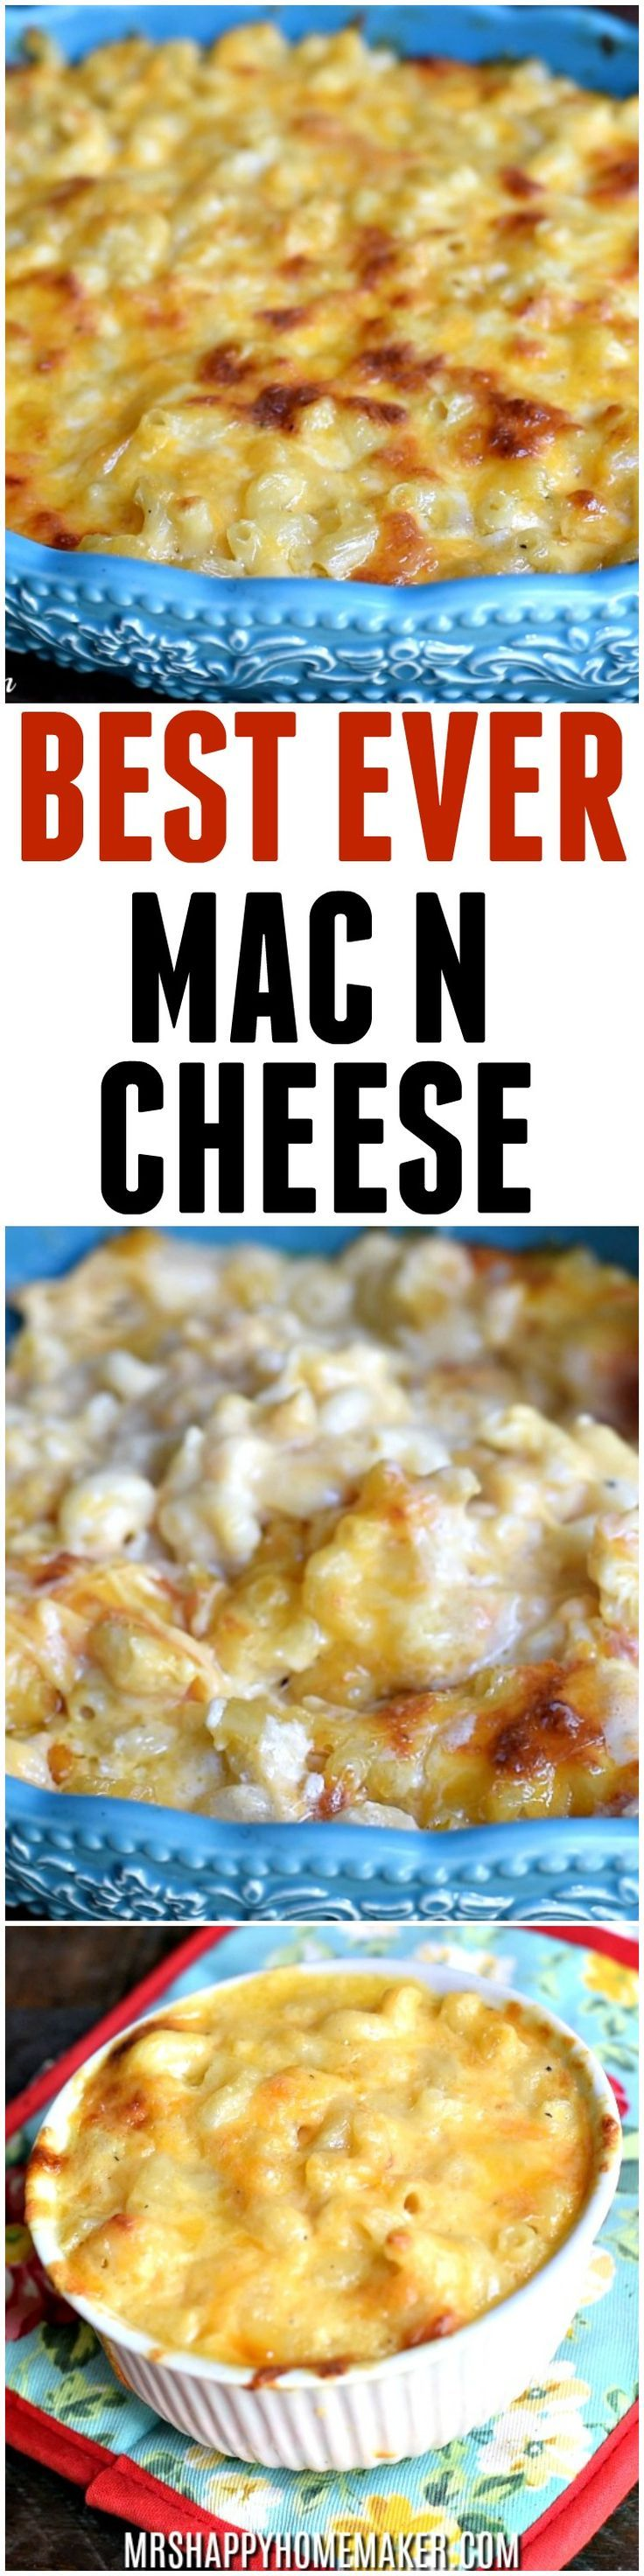 BEST EVER Macaroni & Cheese - I've been holding onto this recipe for 10+ years. It's SO good! Super easy, super cheesy... just the way mac n cheese should be! | MrsHappyHomemaker.com @thathousewife